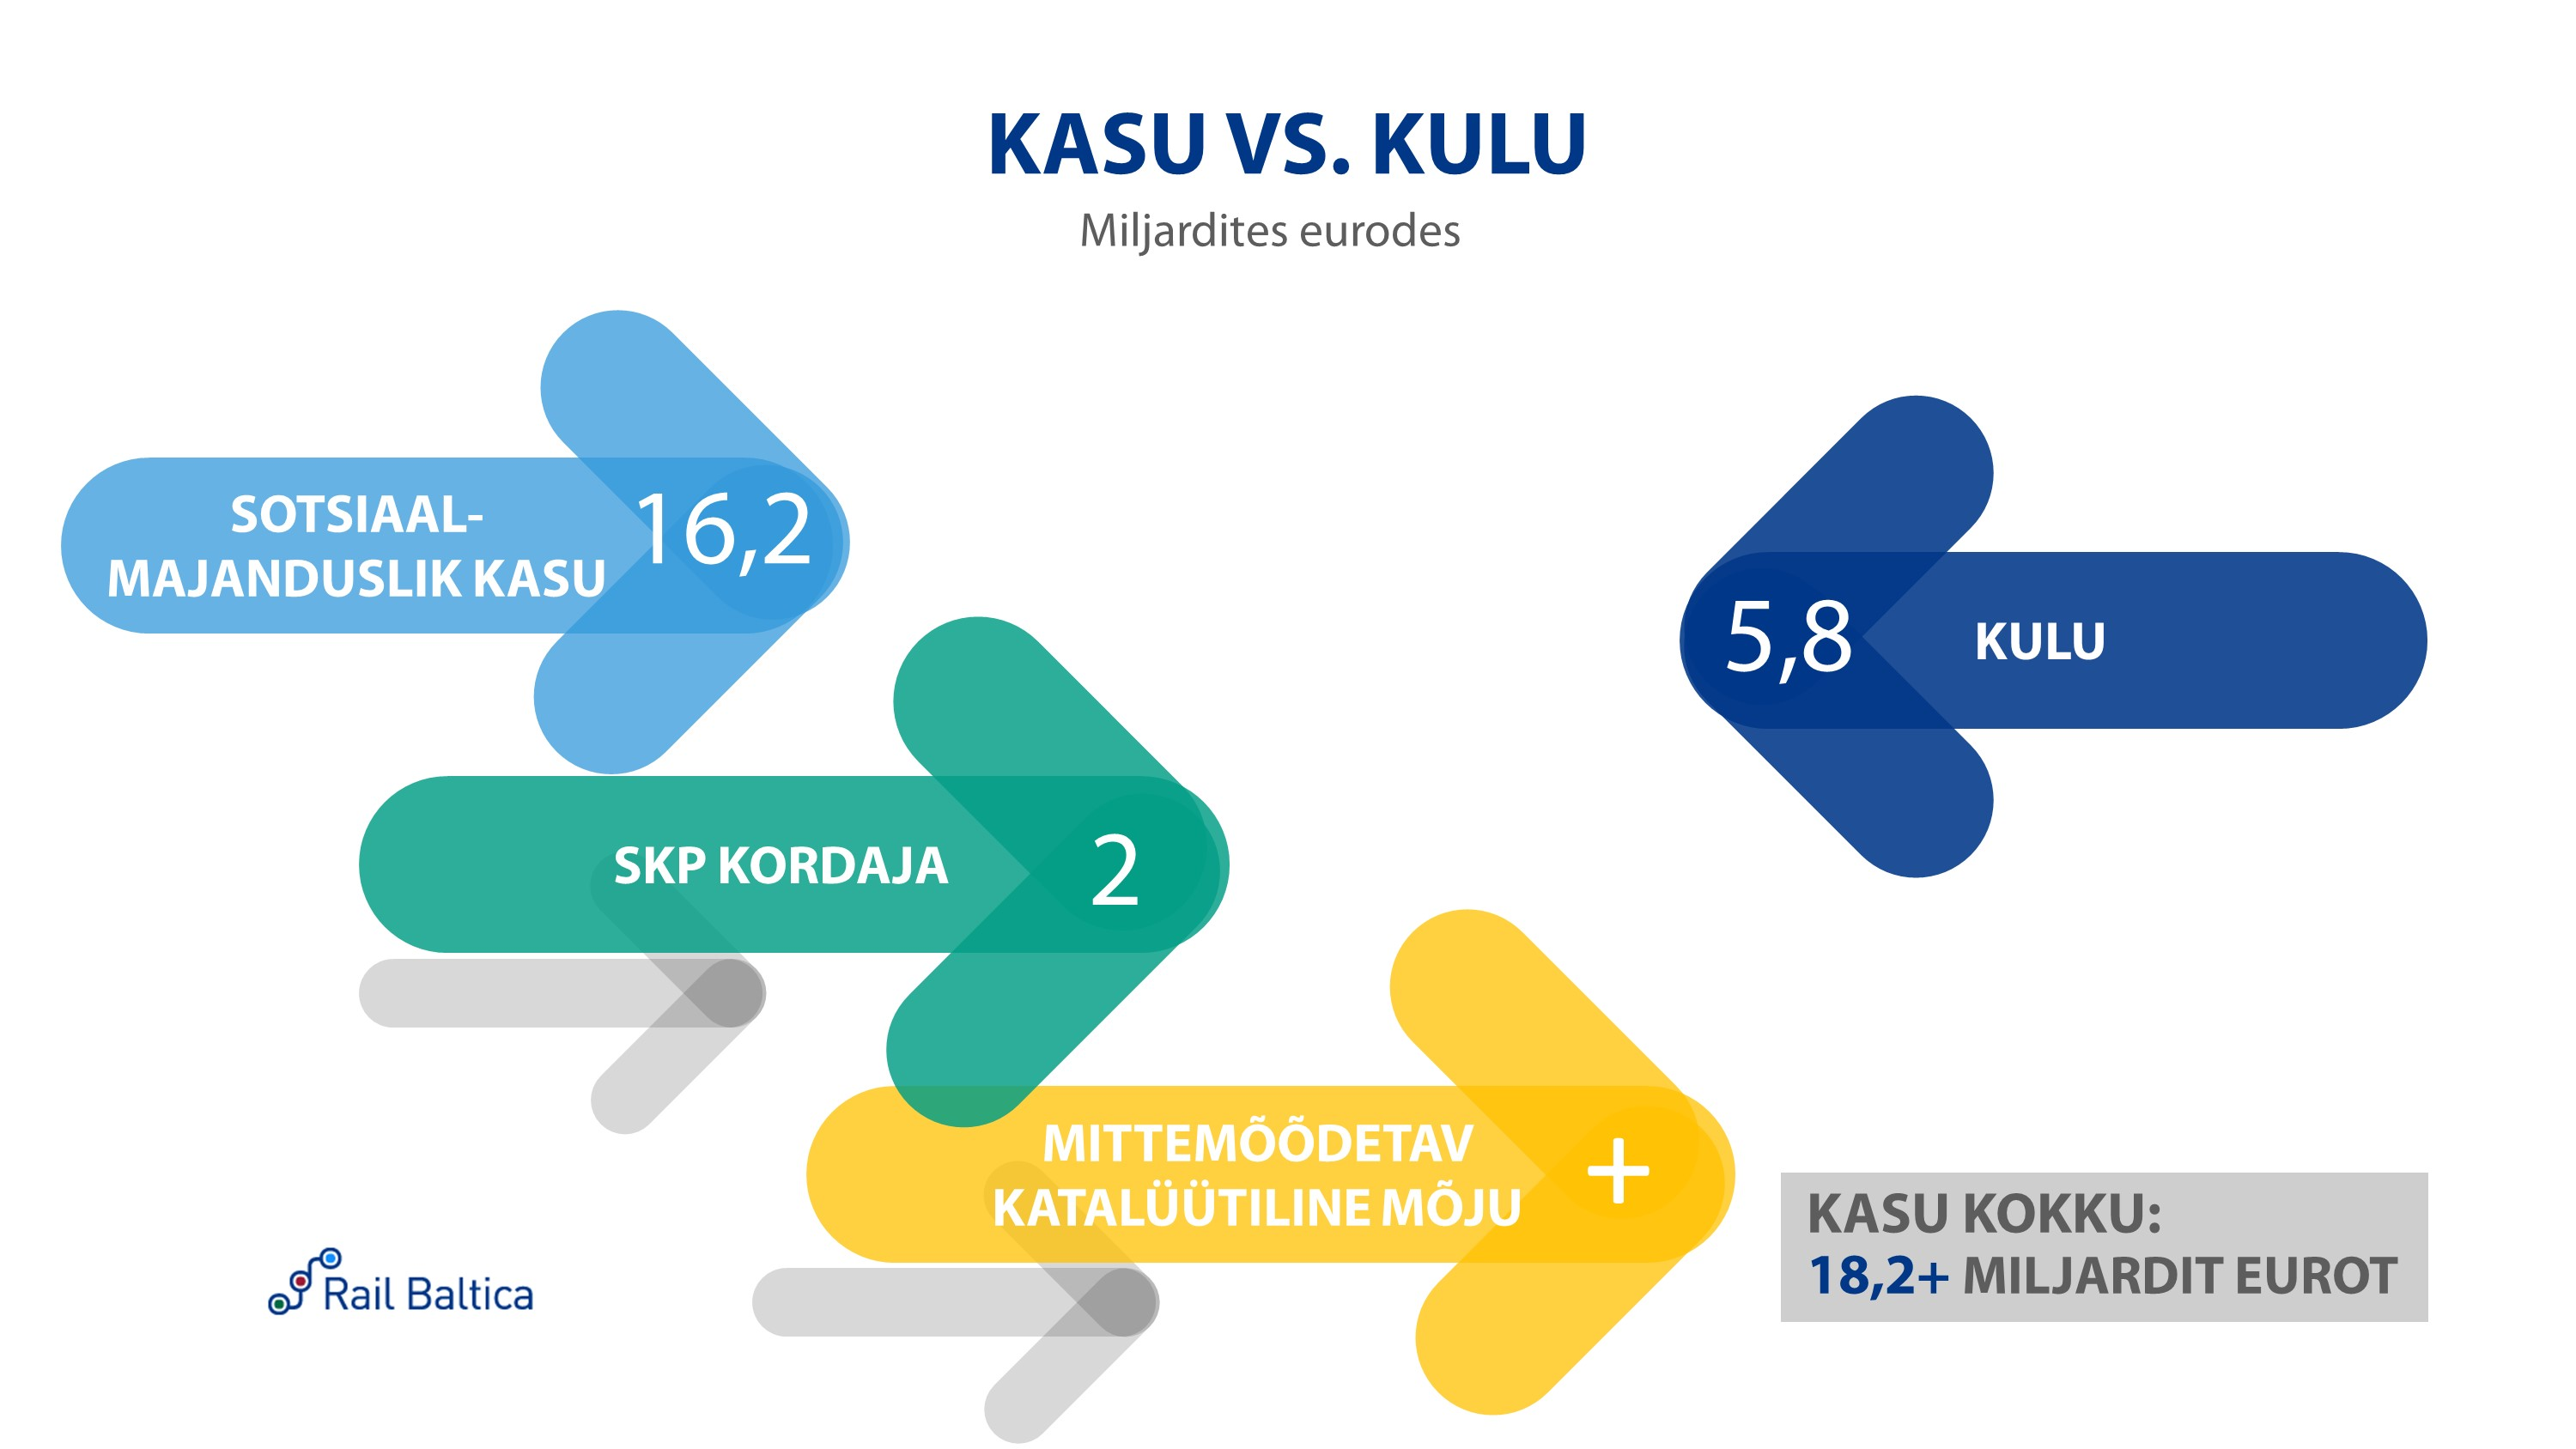 Rail Baltica kasu vs. kulu